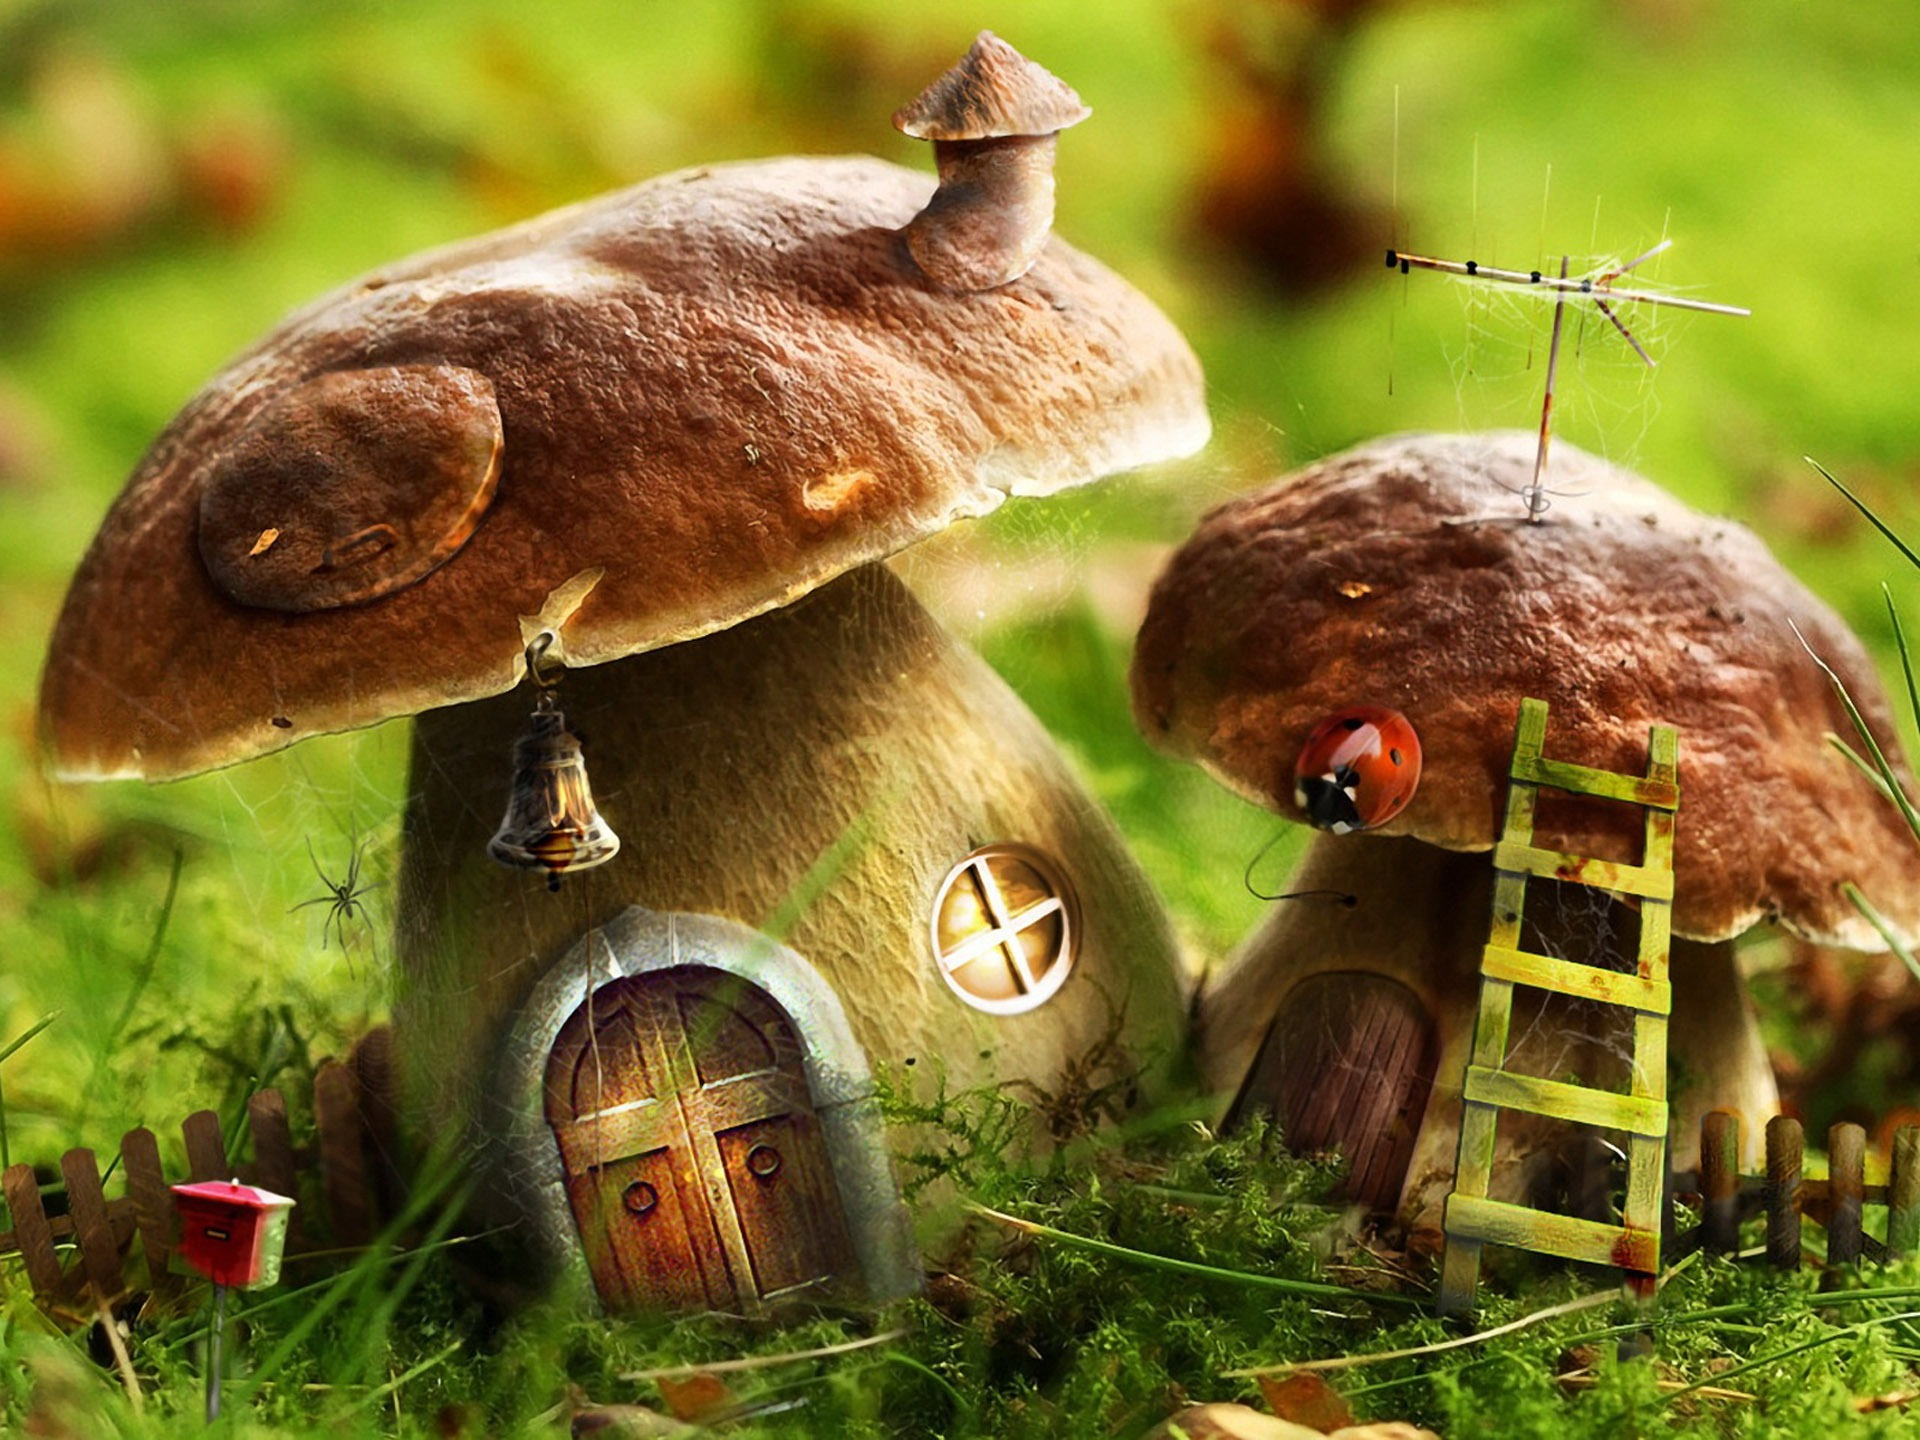 Mushrooms House Wallpaper Photo Manipulated Nature. Nature house wallpaper wallpapers for free download about  3 807